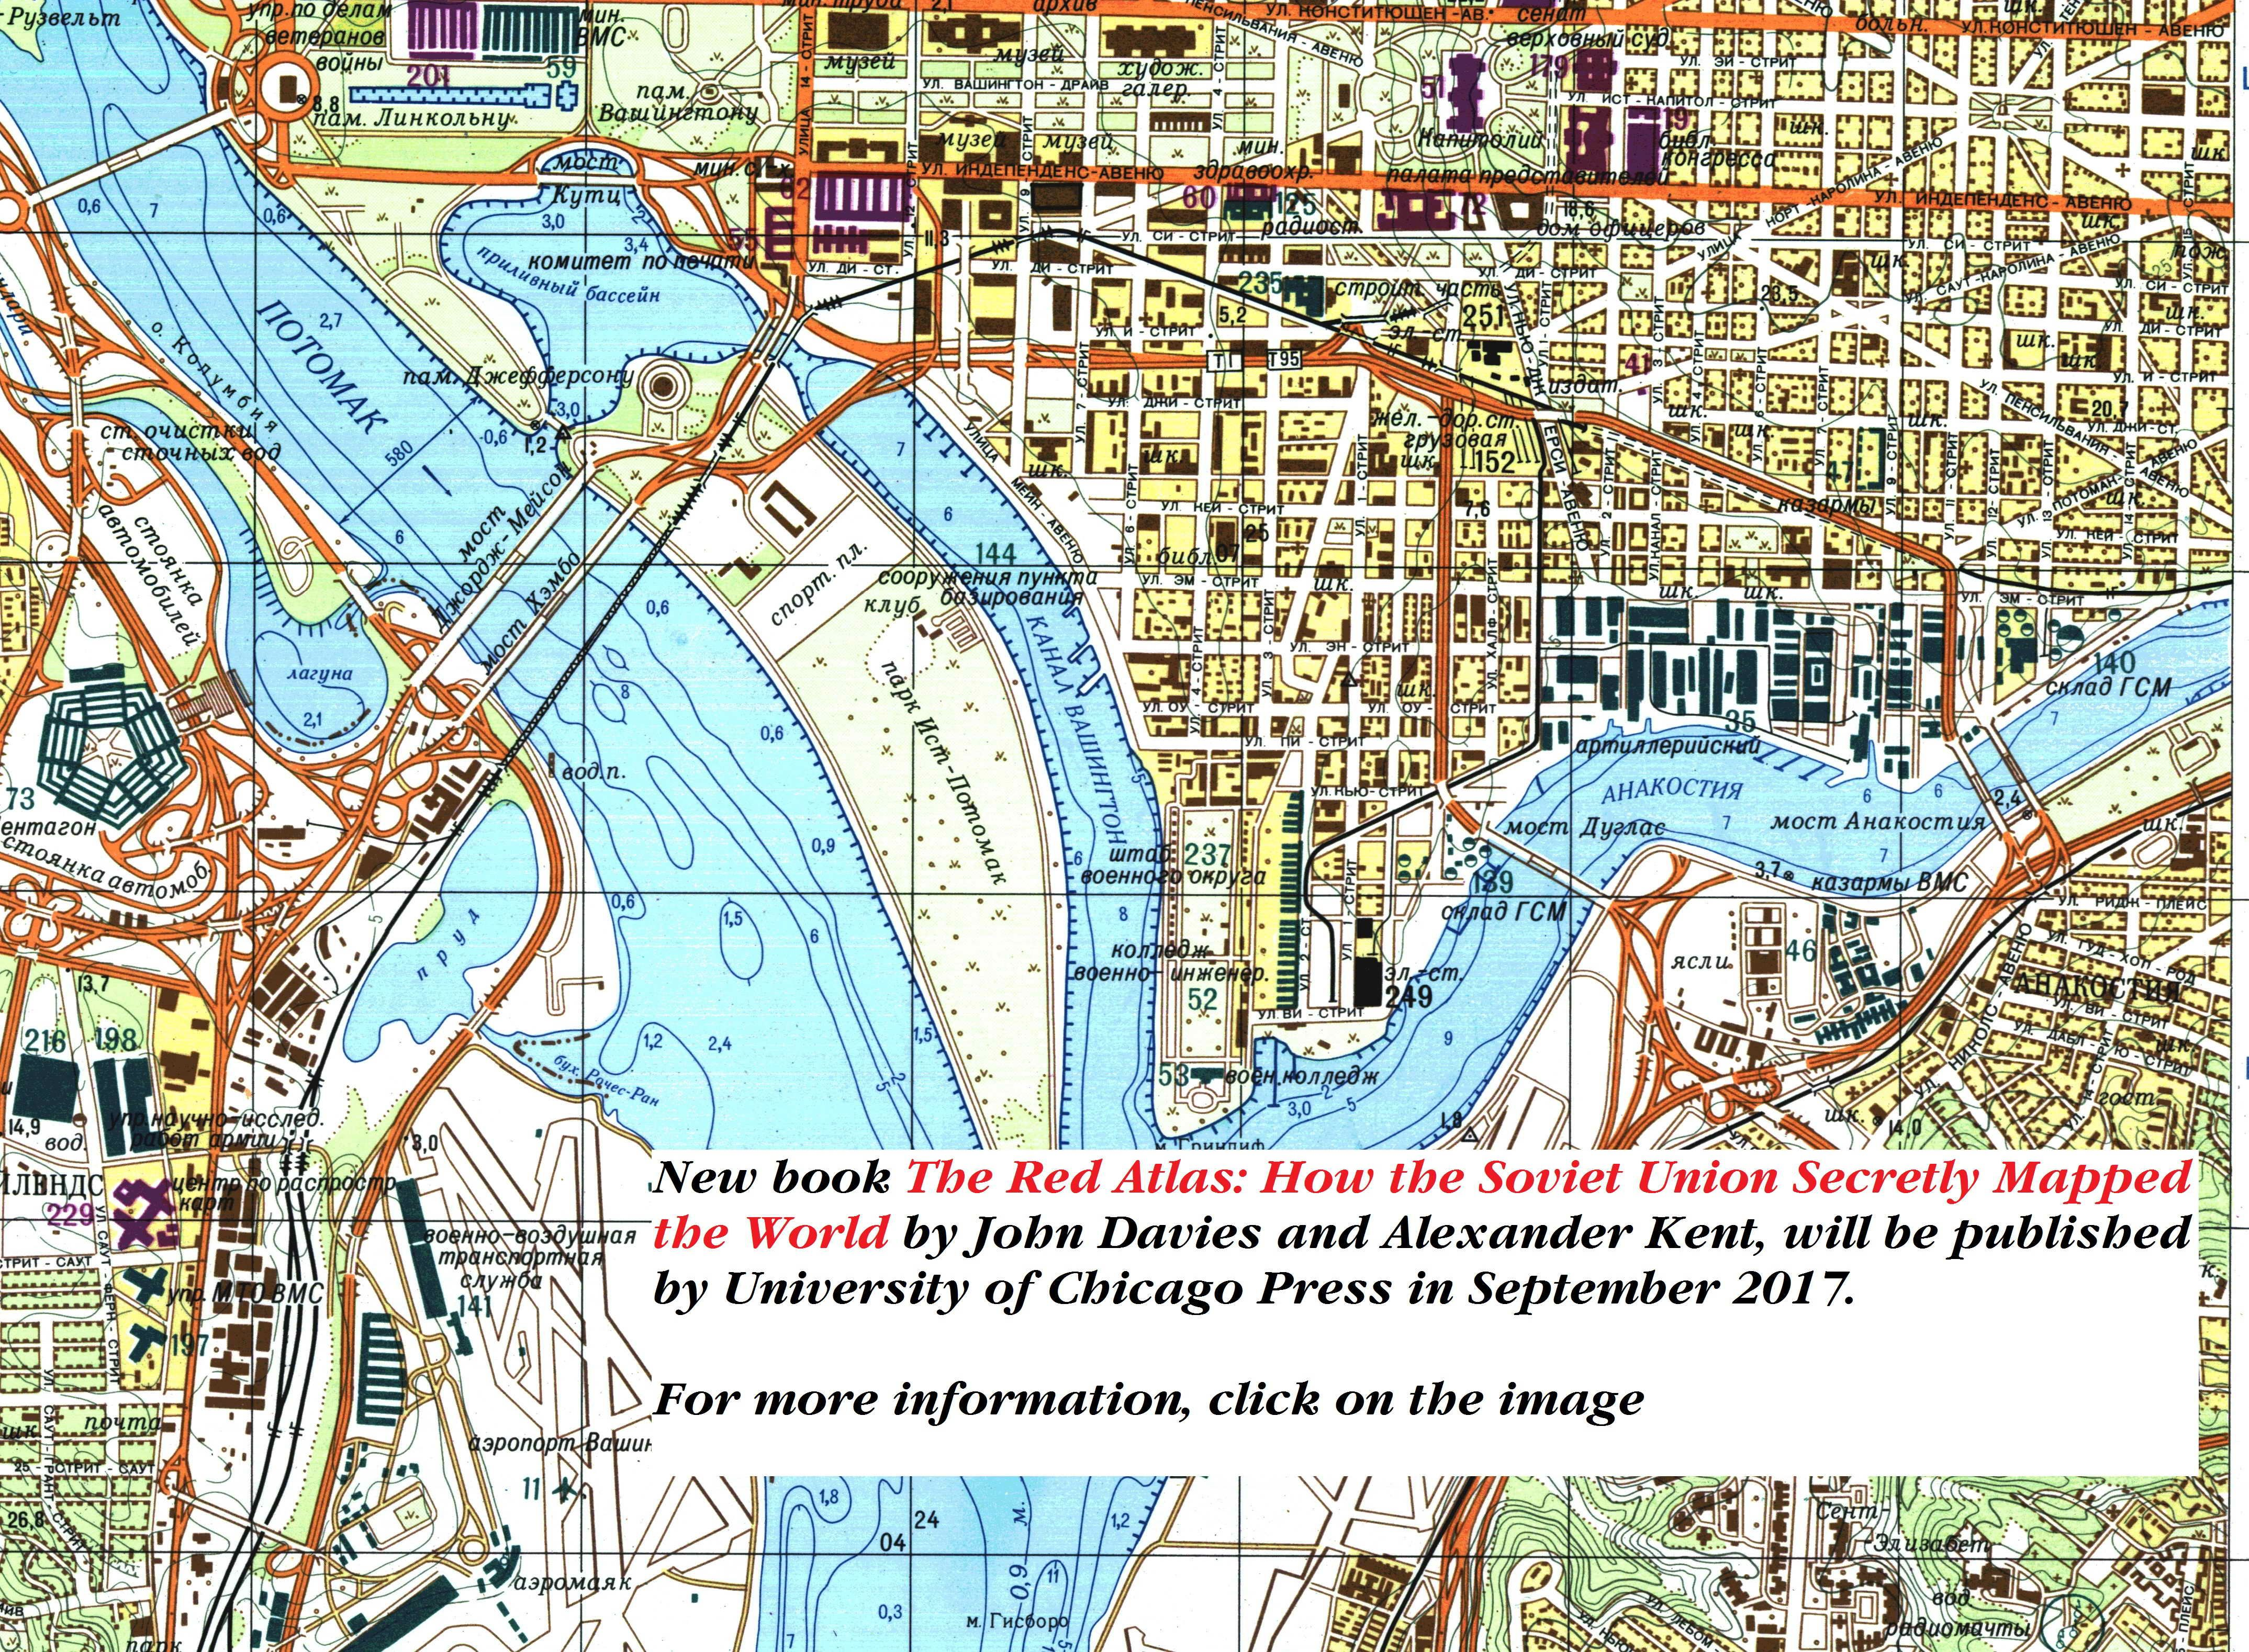 Topographic Map Washington Dc.Soviet Military Topographic Maps Of Britain And The World Soviet